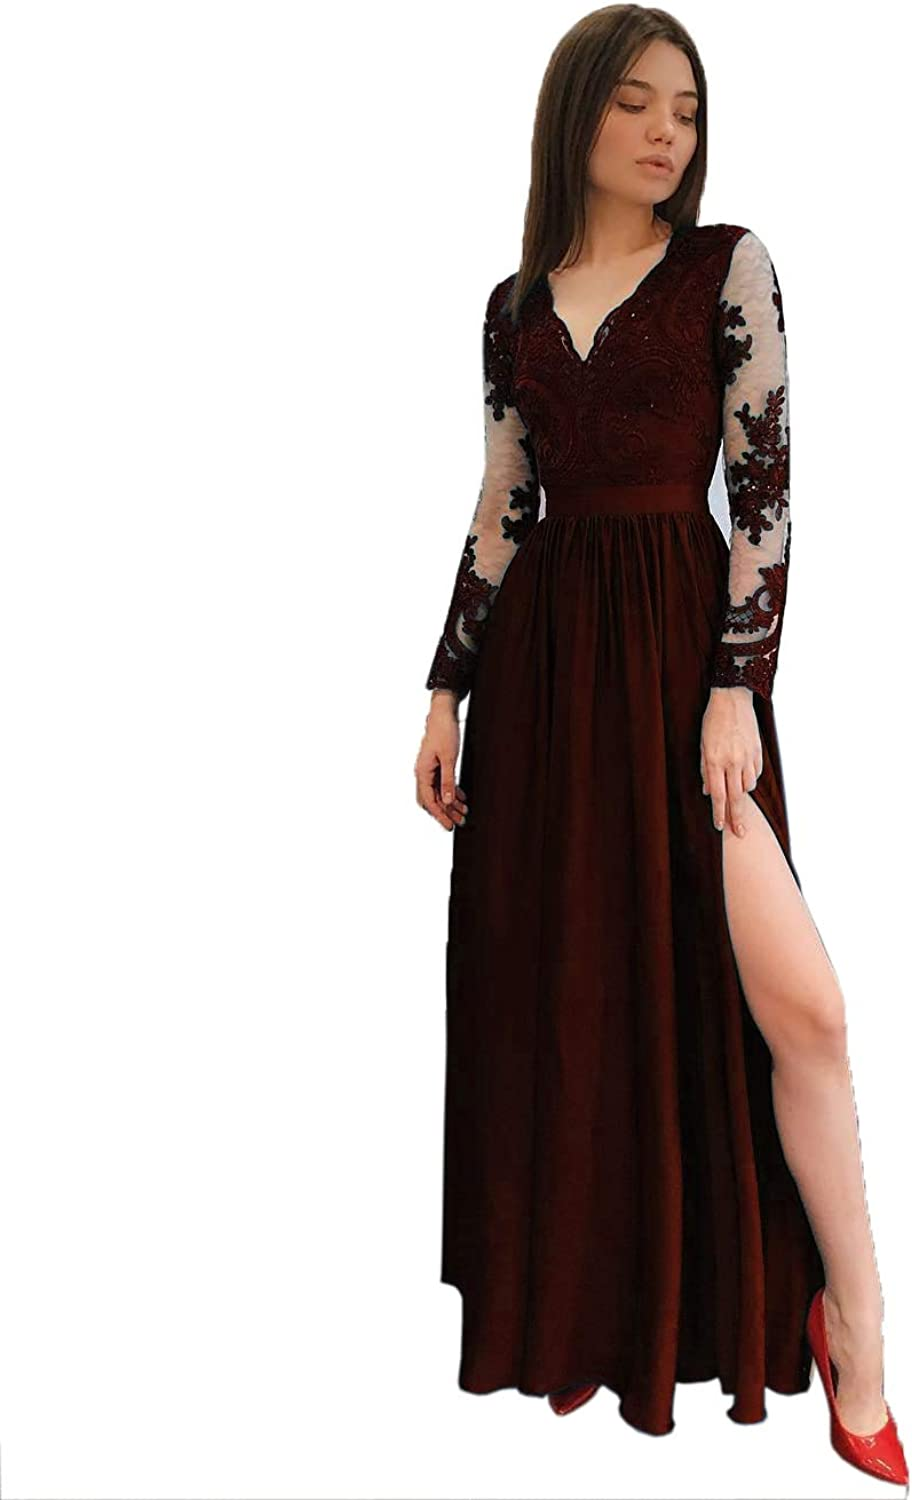 ASBridal Prom Dresses Long Lace Party Dress Long Sleeve Formal Evening Gowns V Neck